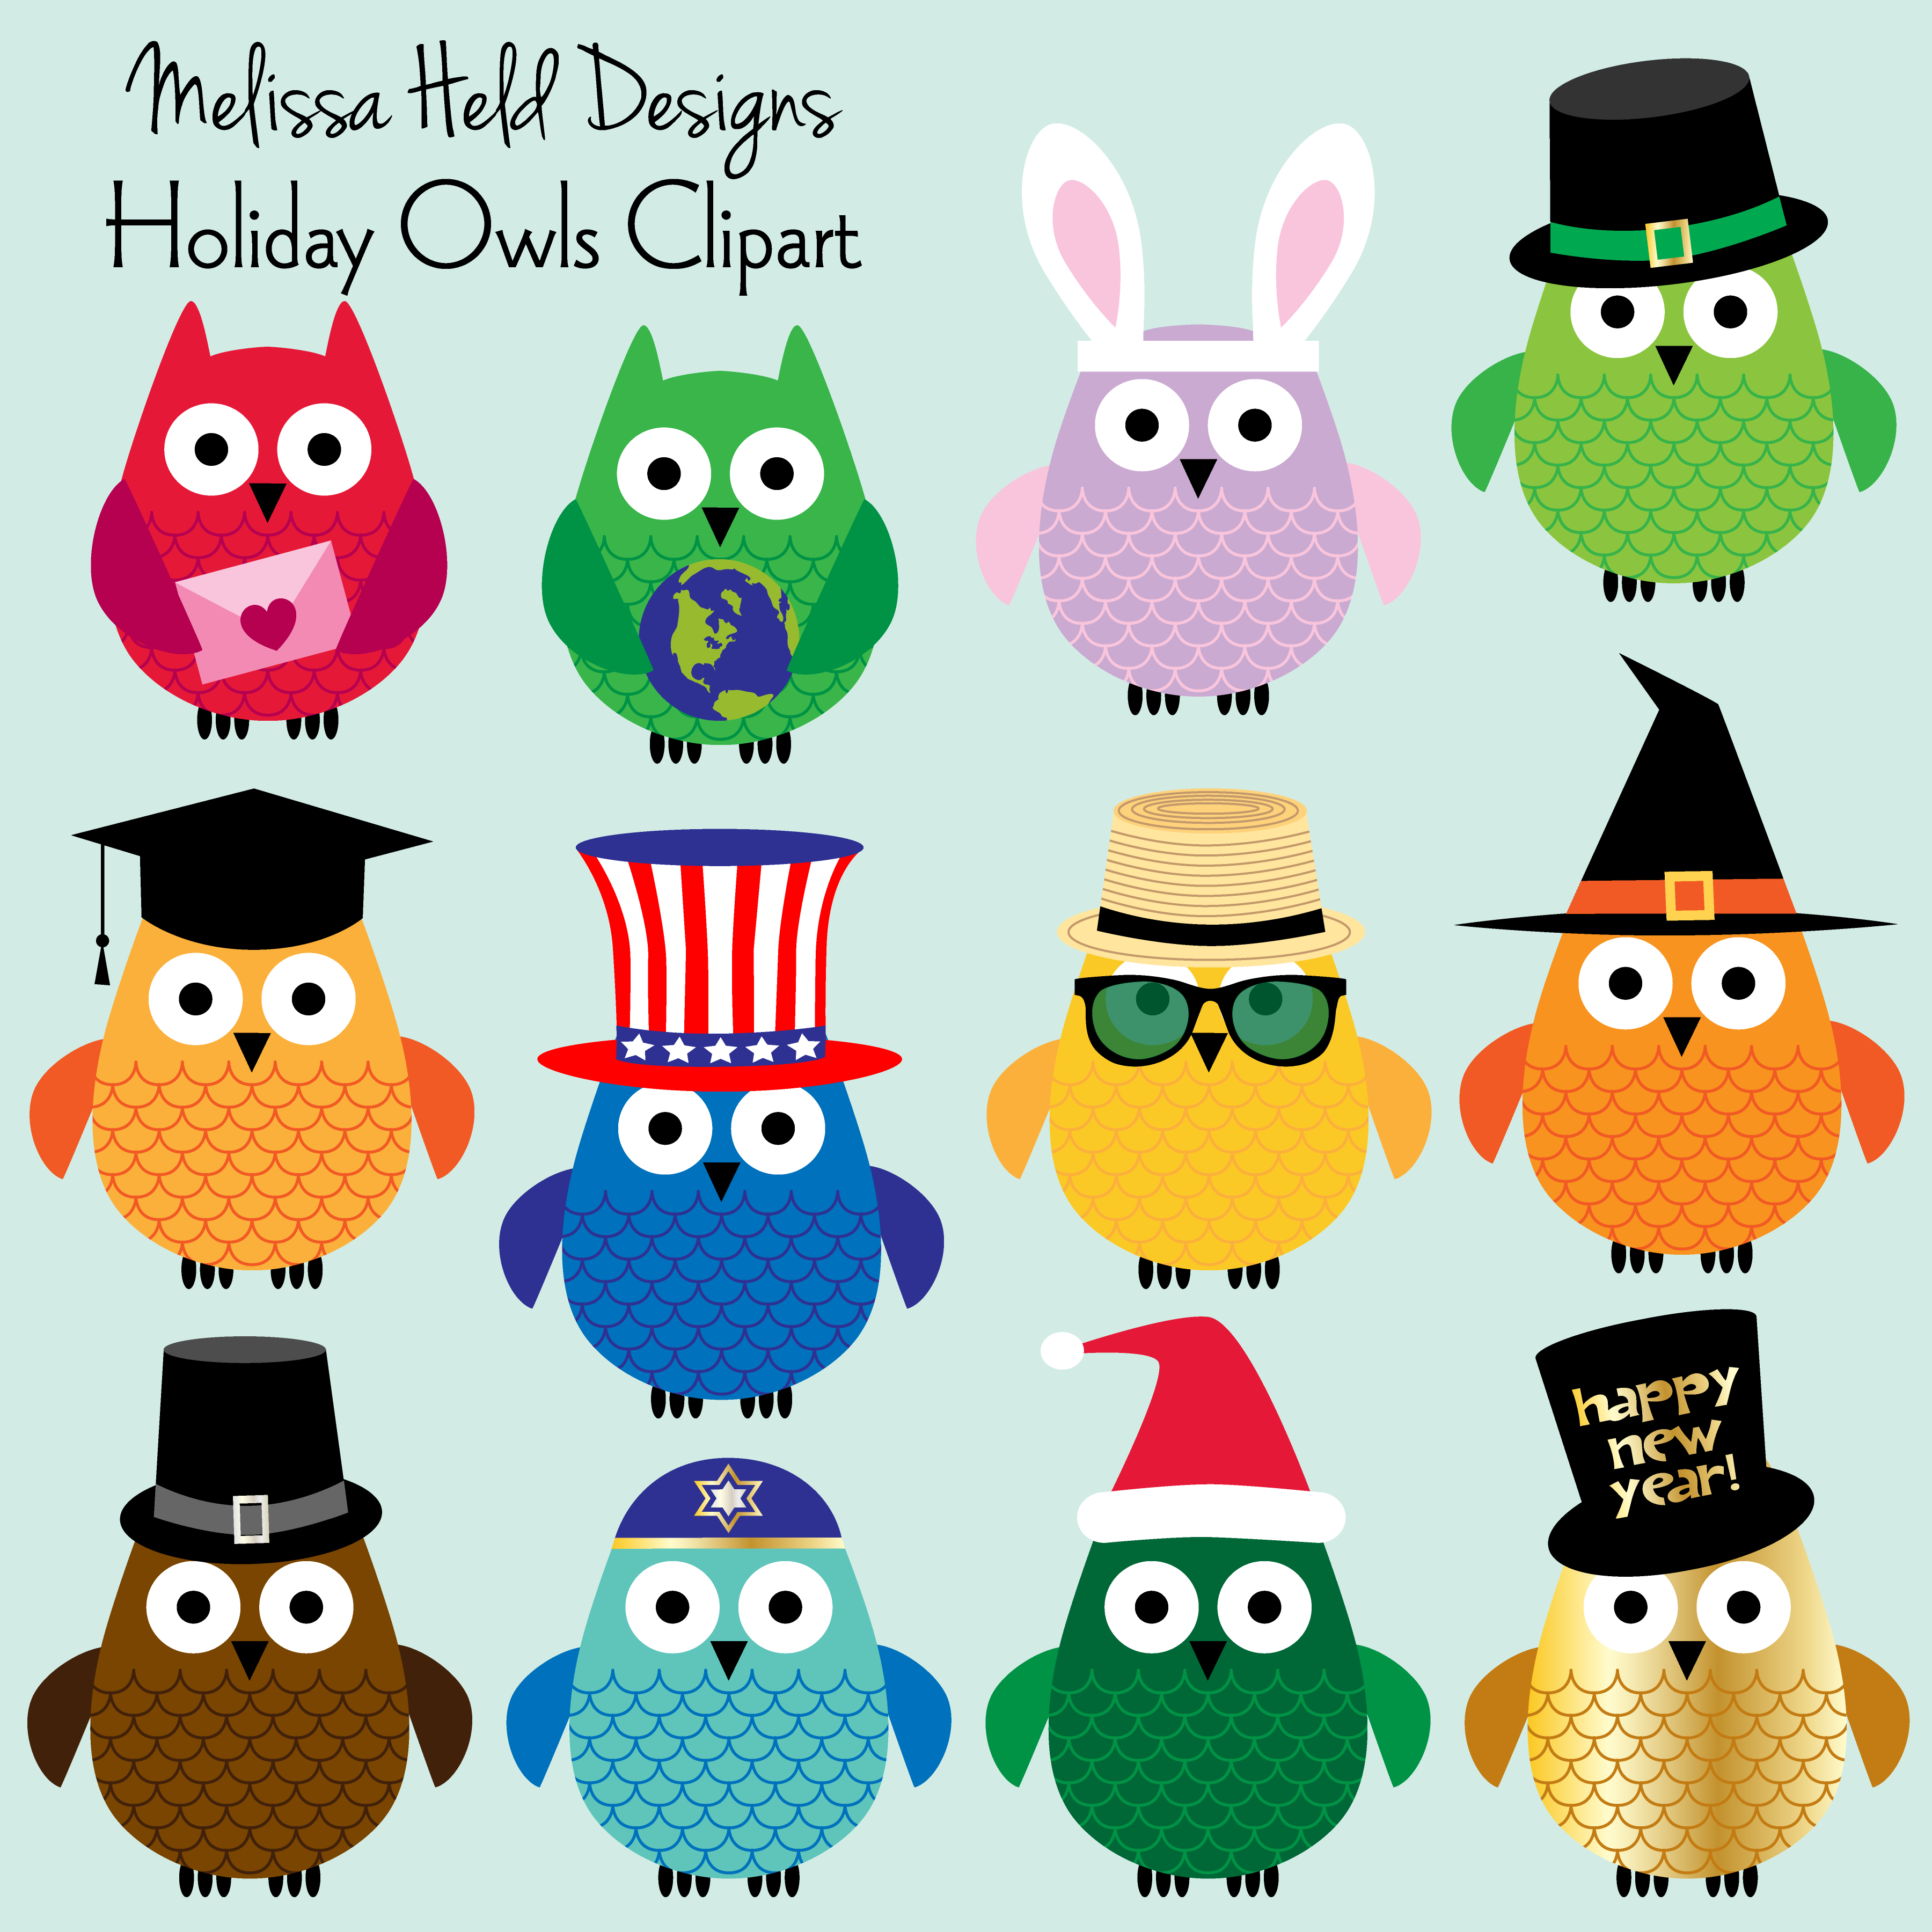 Halloween Thanksgiving Christmas Clipart.Holiday Owls Clipart Arts Crafts Christmas Owls